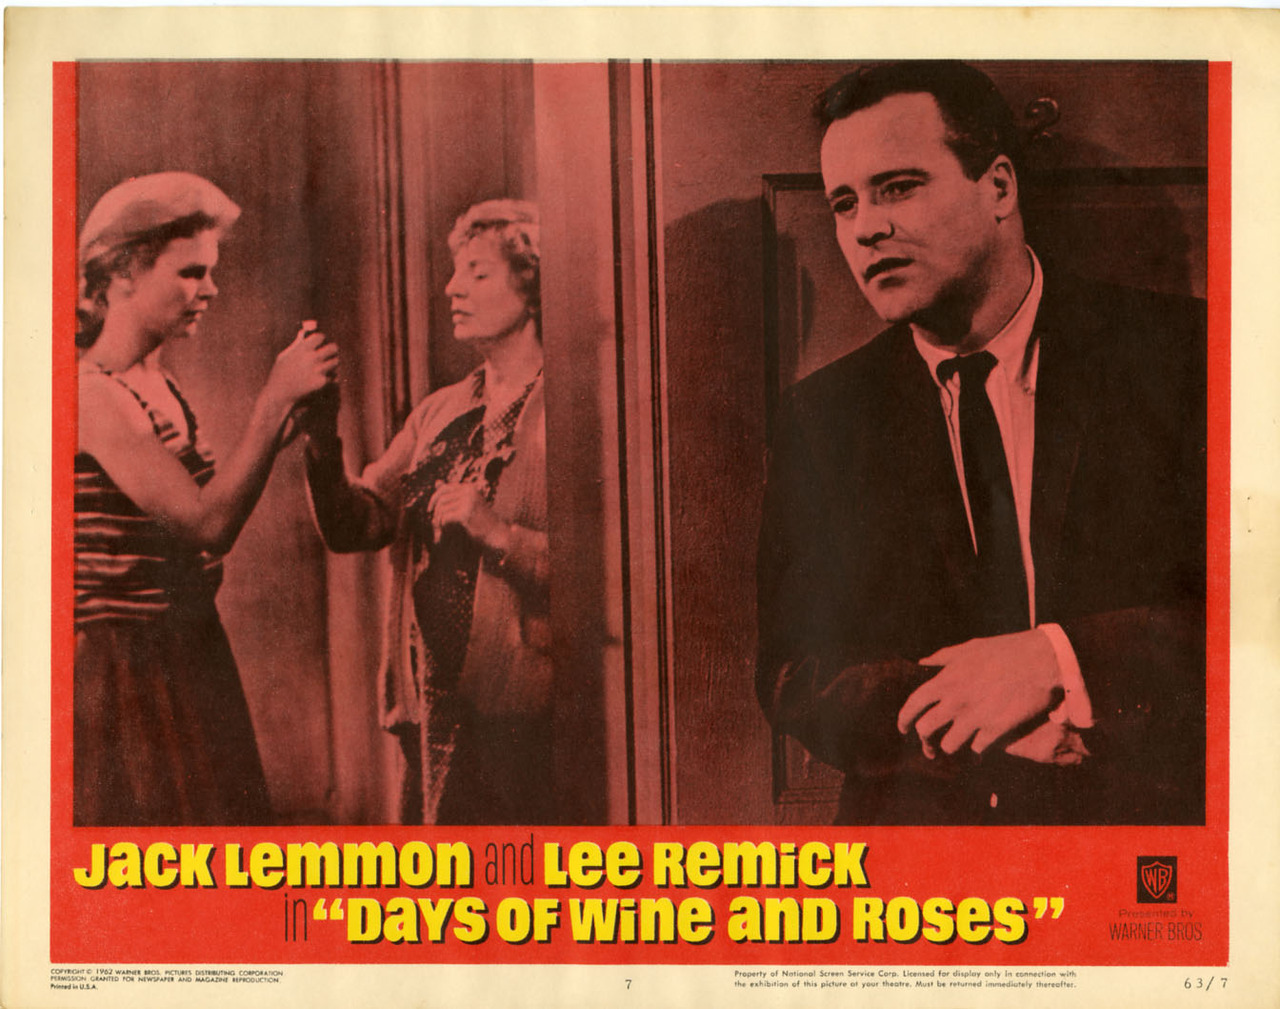 Days of Wine and Roses, US lobby card #7. 1963 Submitted by thedreamerspy